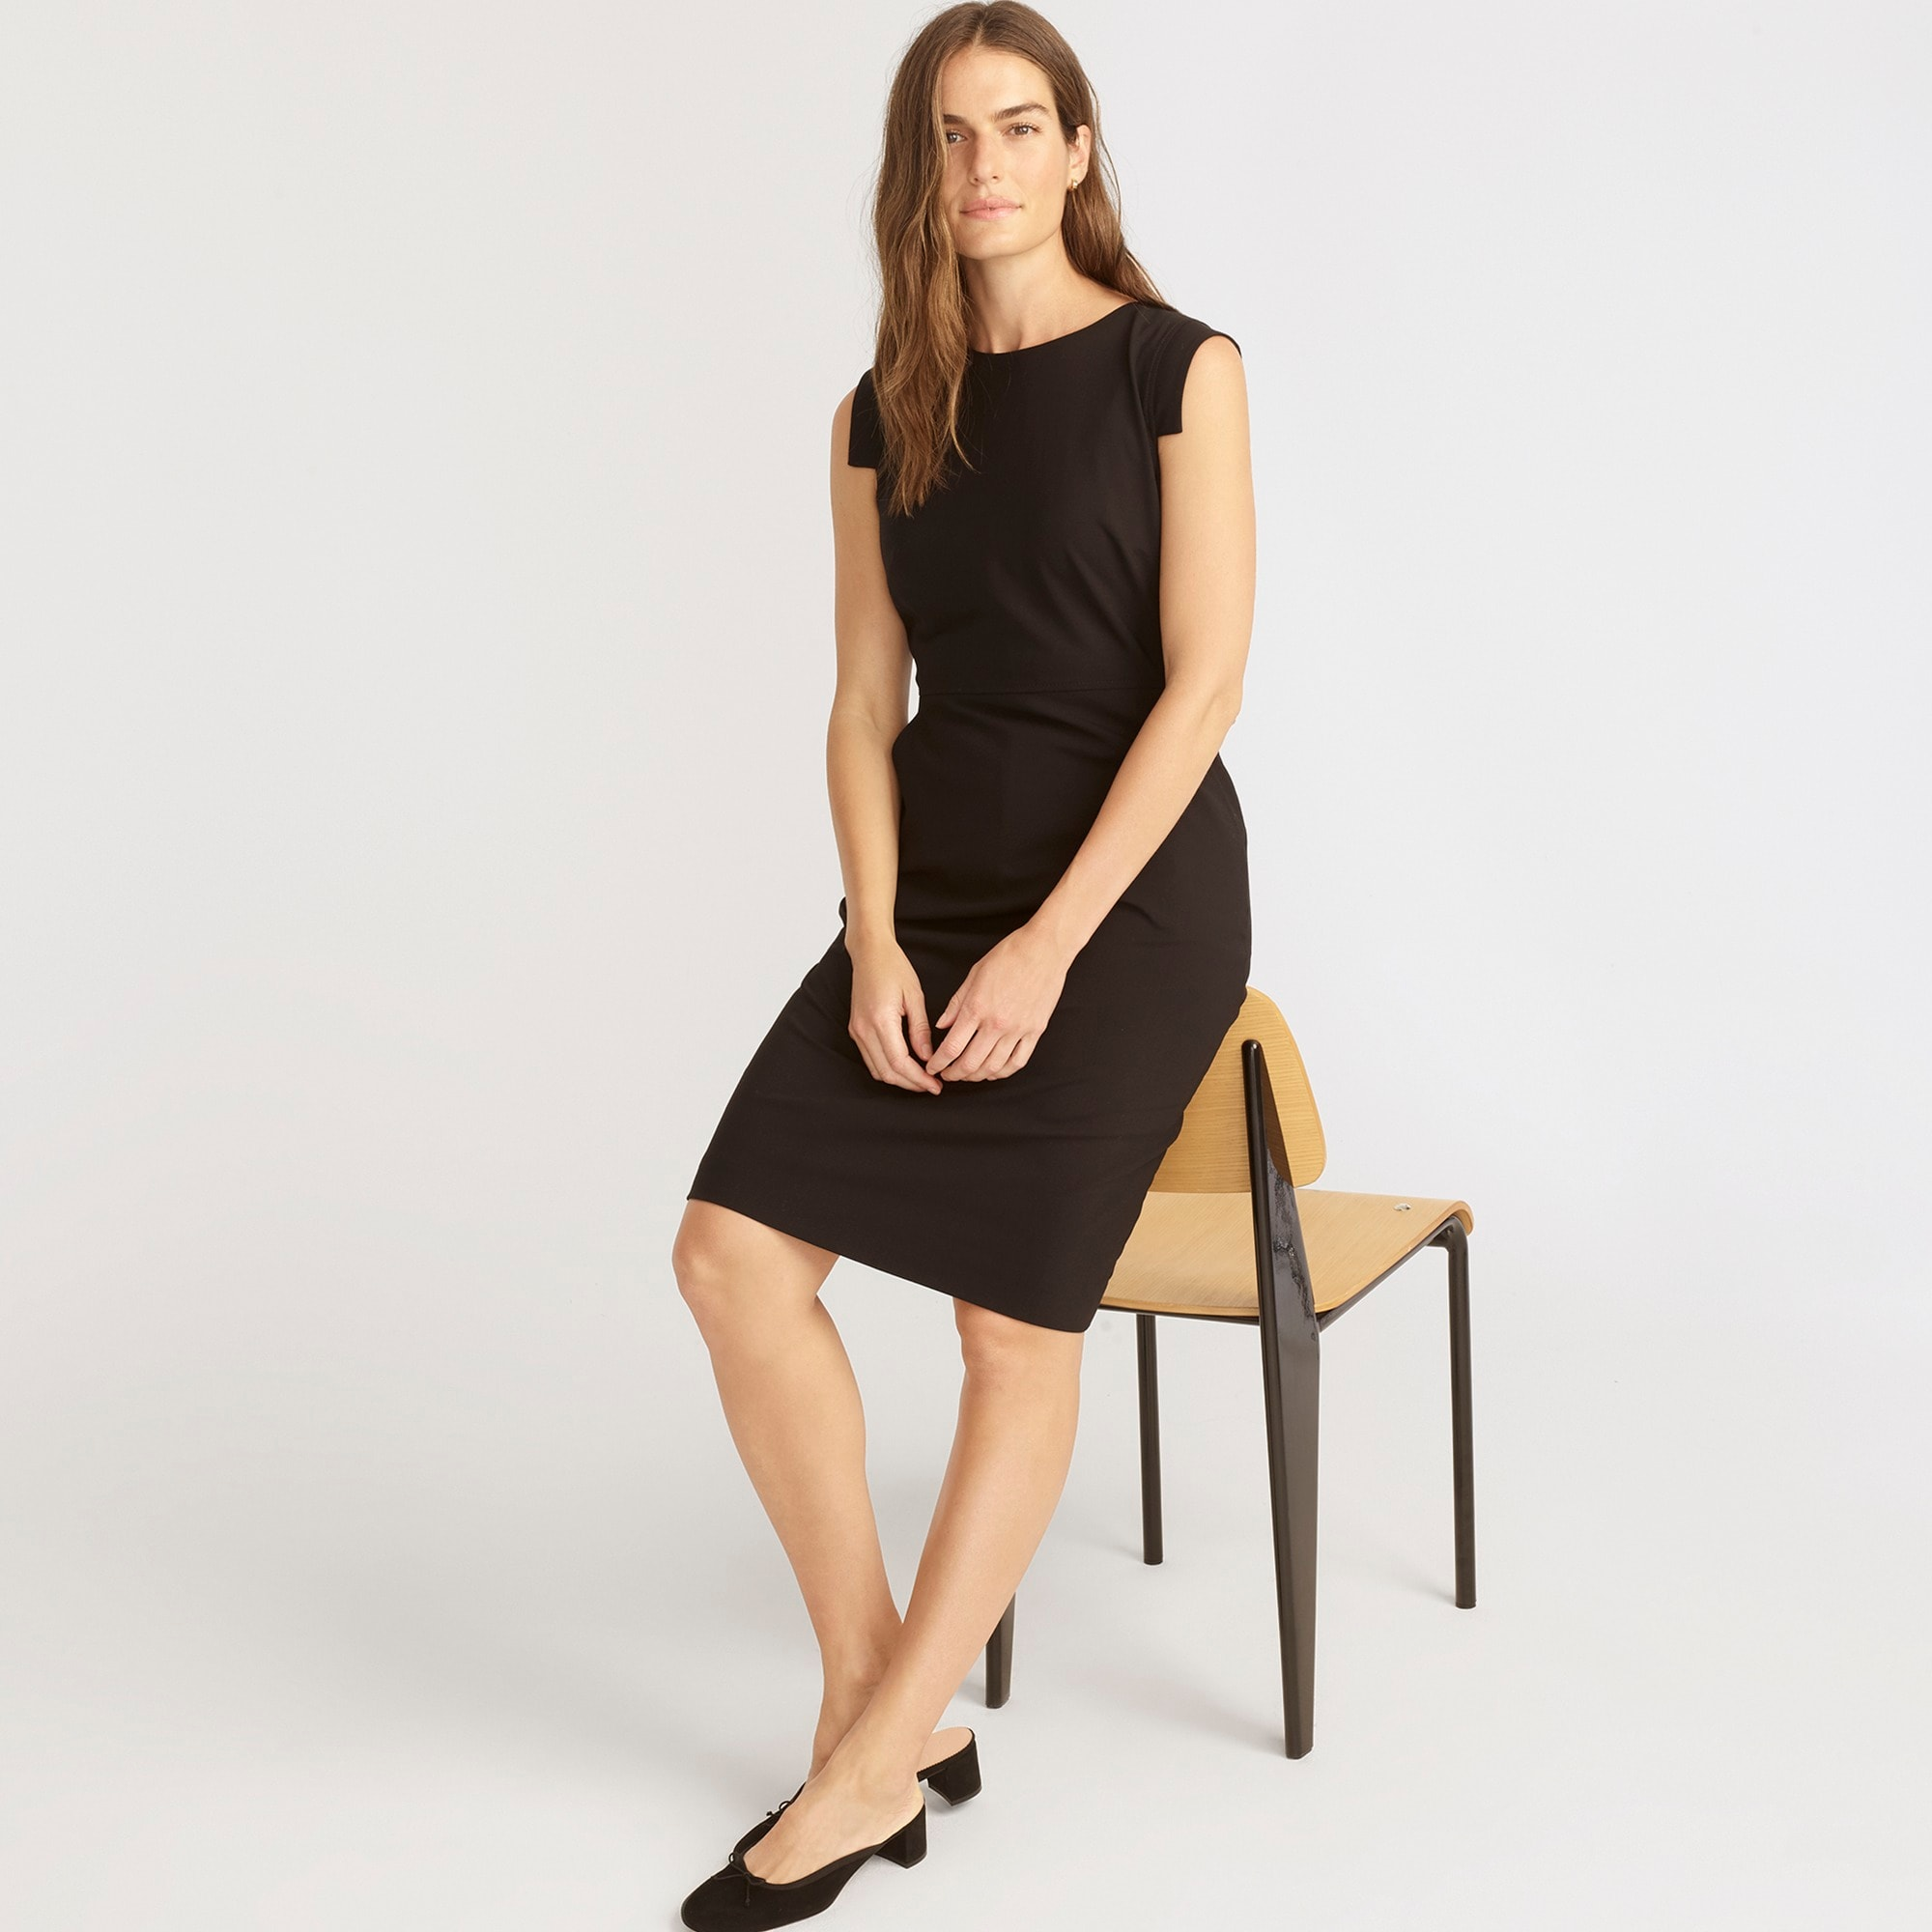 Tall résumé dress women tall c